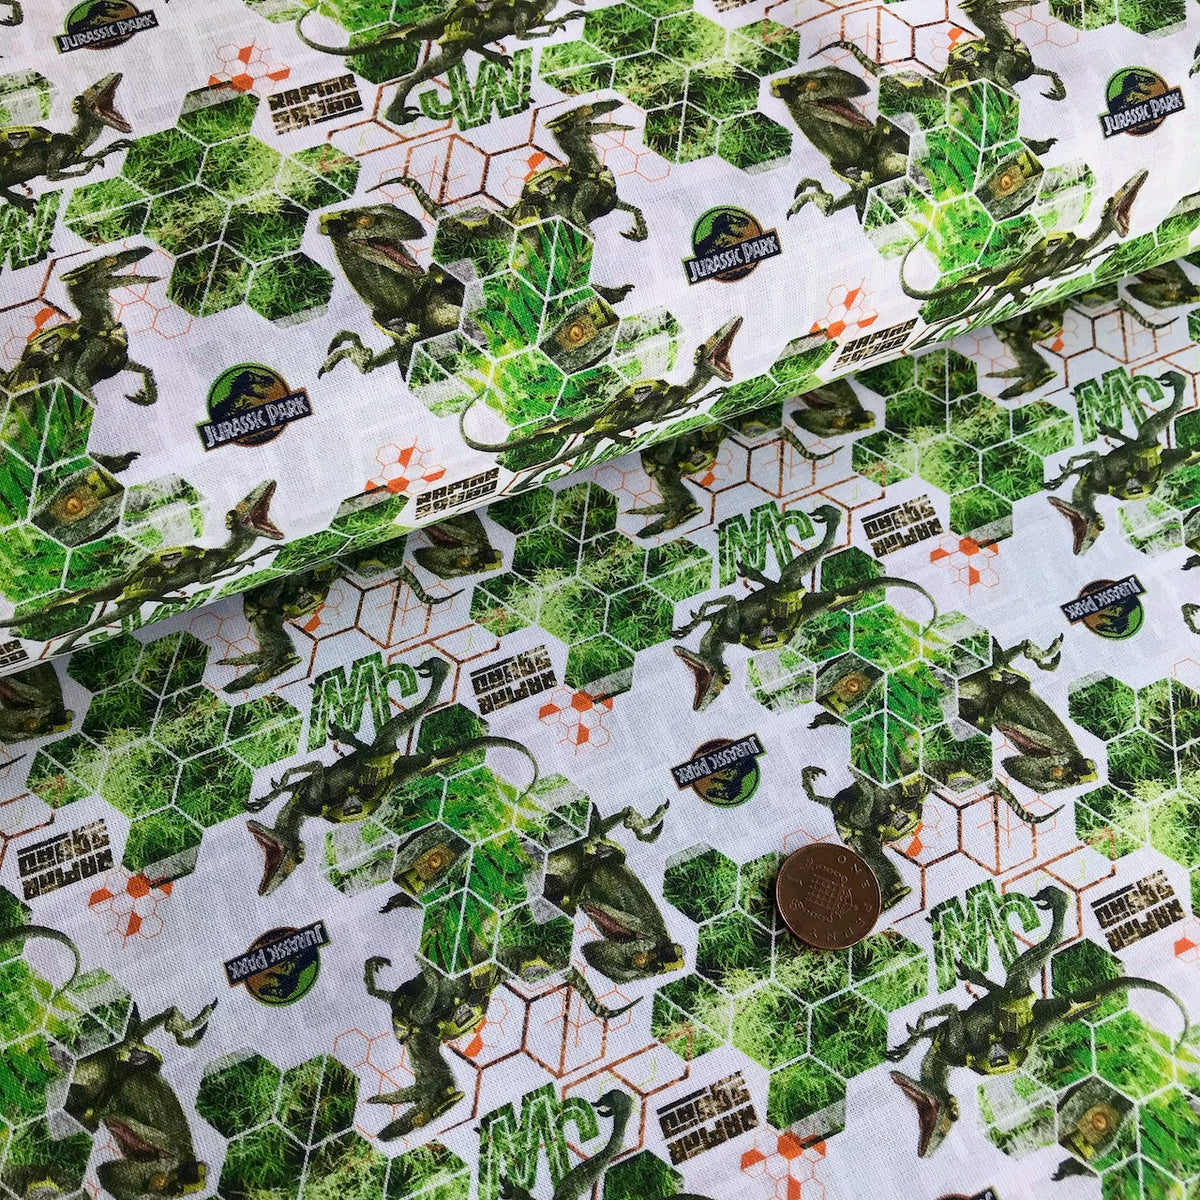 Jurassic Park Hexagons 100% Cotton Fabric 58 Inches Wide (140cm) Sold Per 1/2 Metre